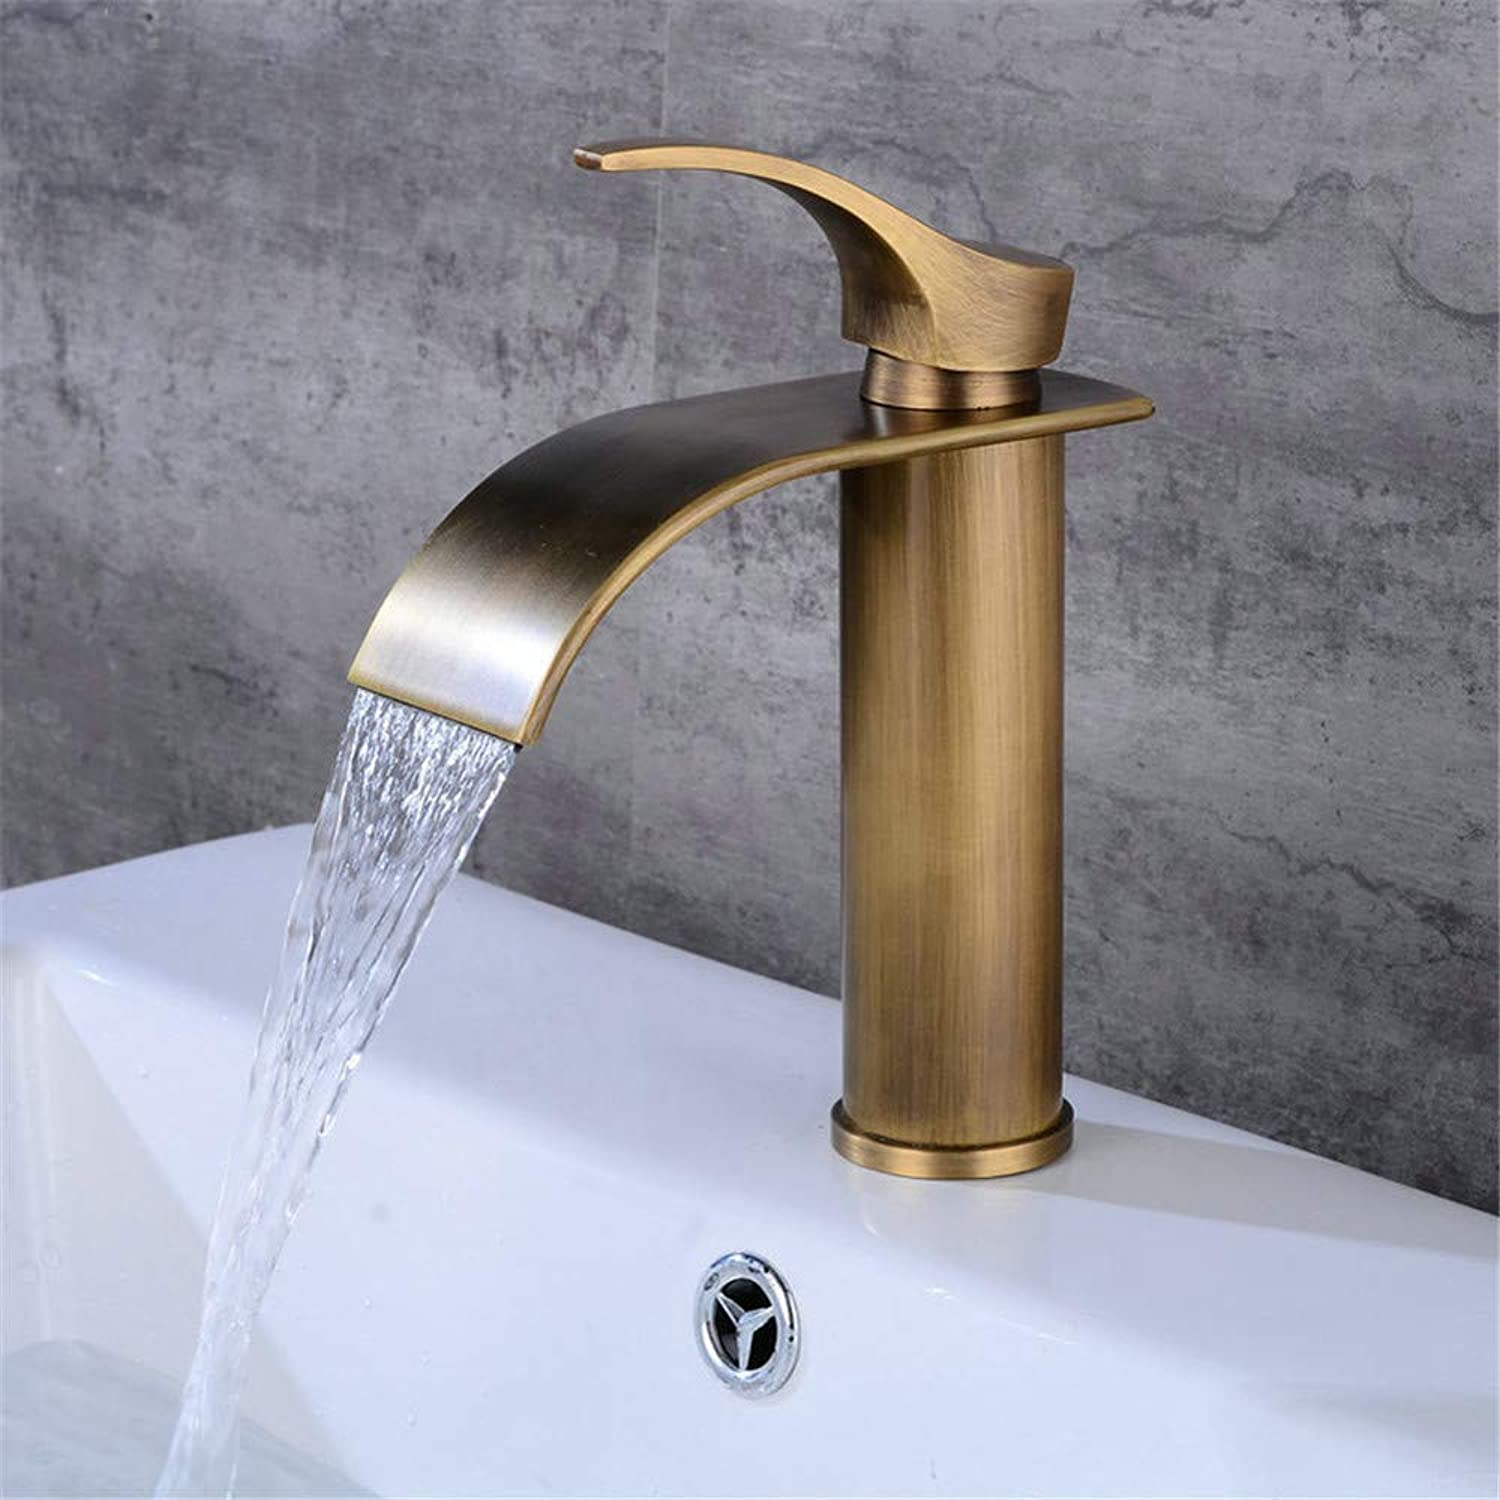 Oudan Single-Joint Spring Kitchen Faucet Hot and Cold Vegetables Basin Faucet Single Hole Faucet (color   -, Size   -)